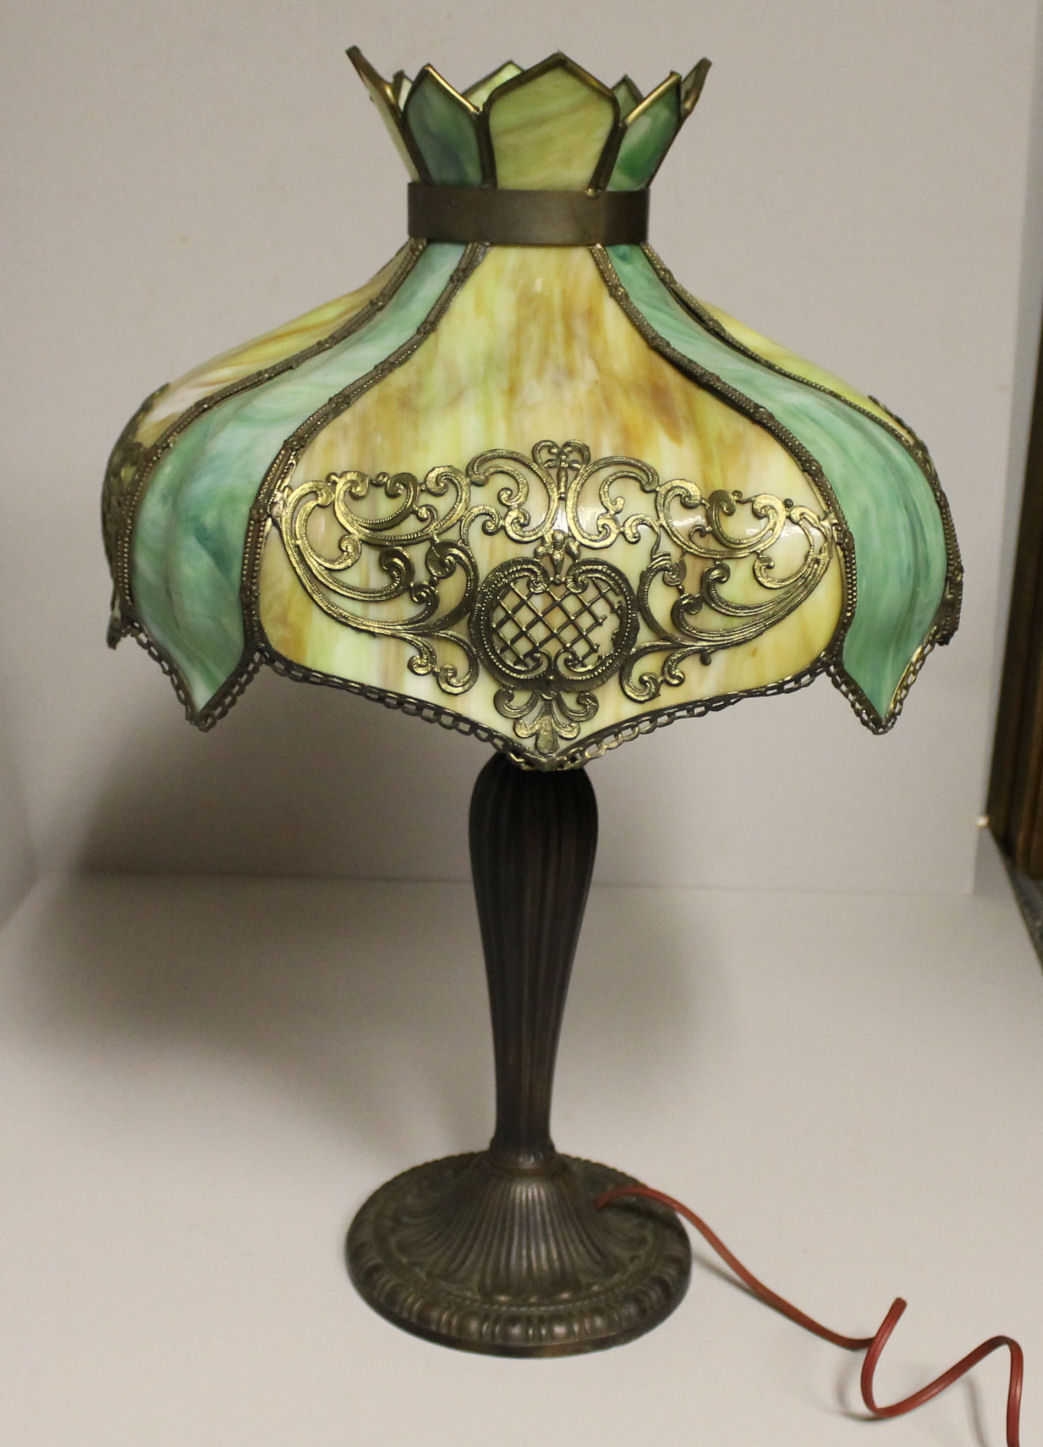 Bargain Johns Antiques  Antique Panel Lamp with Bent